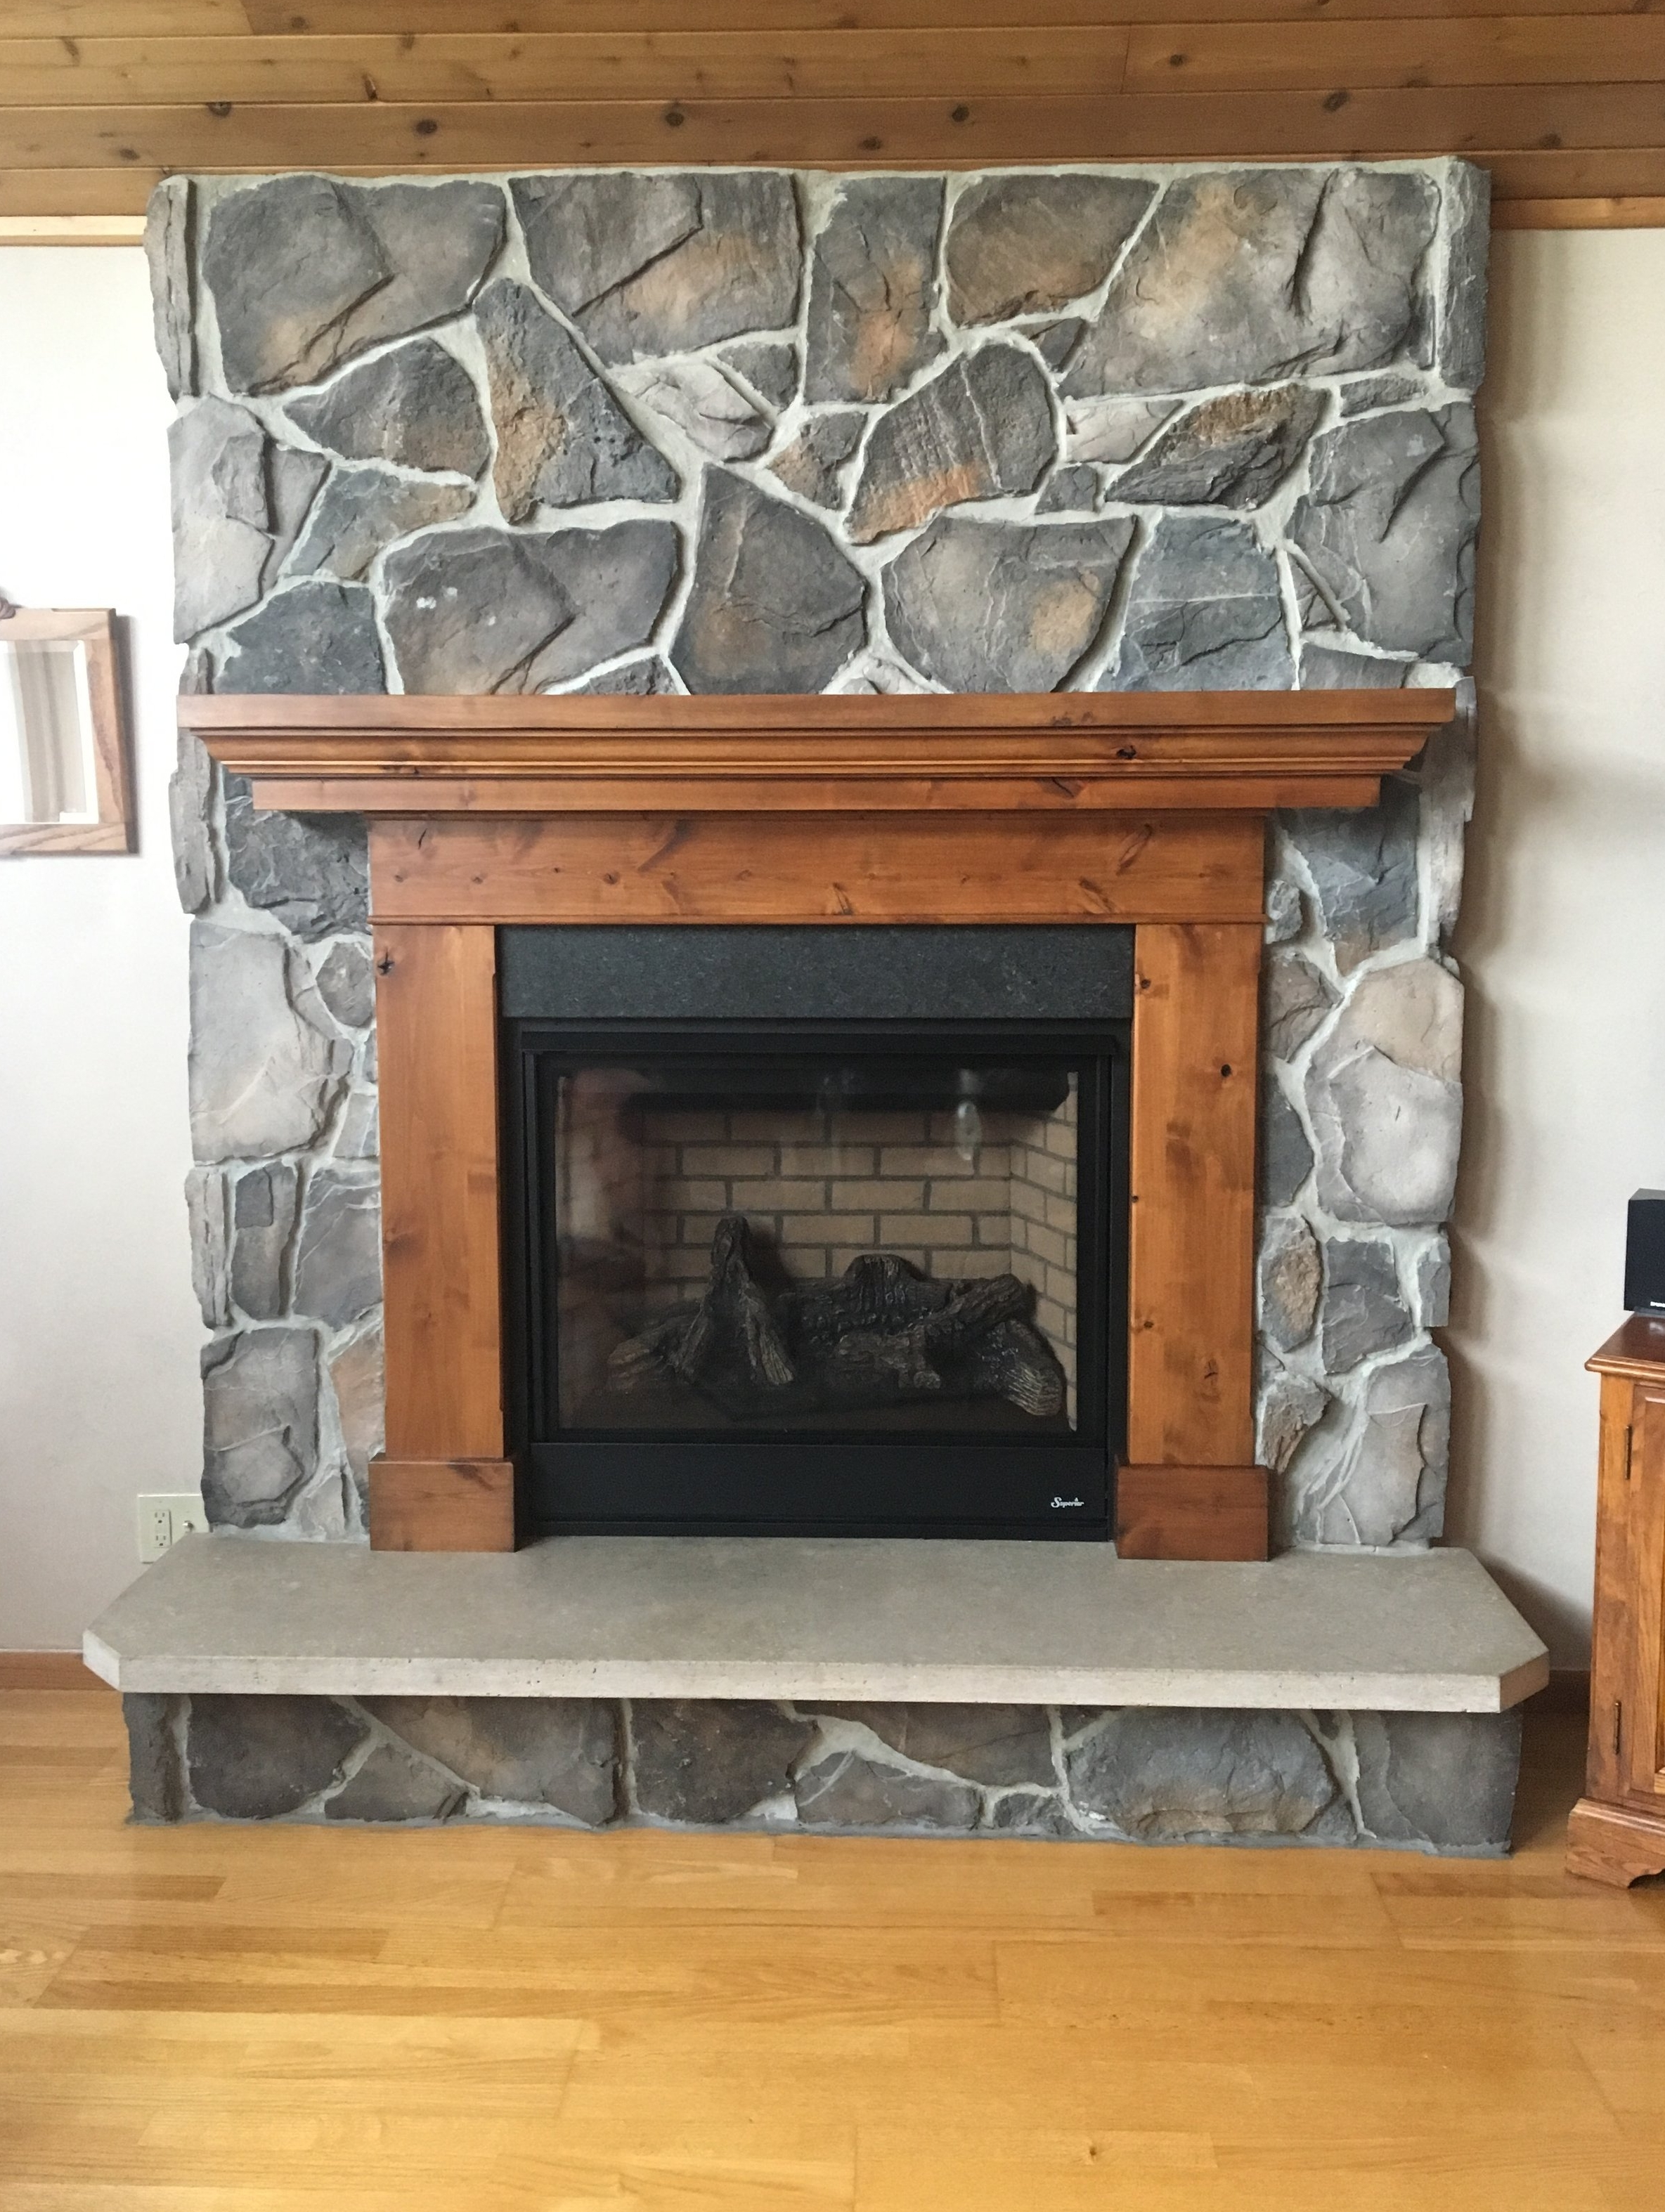 Fireplace Surround and Mantel